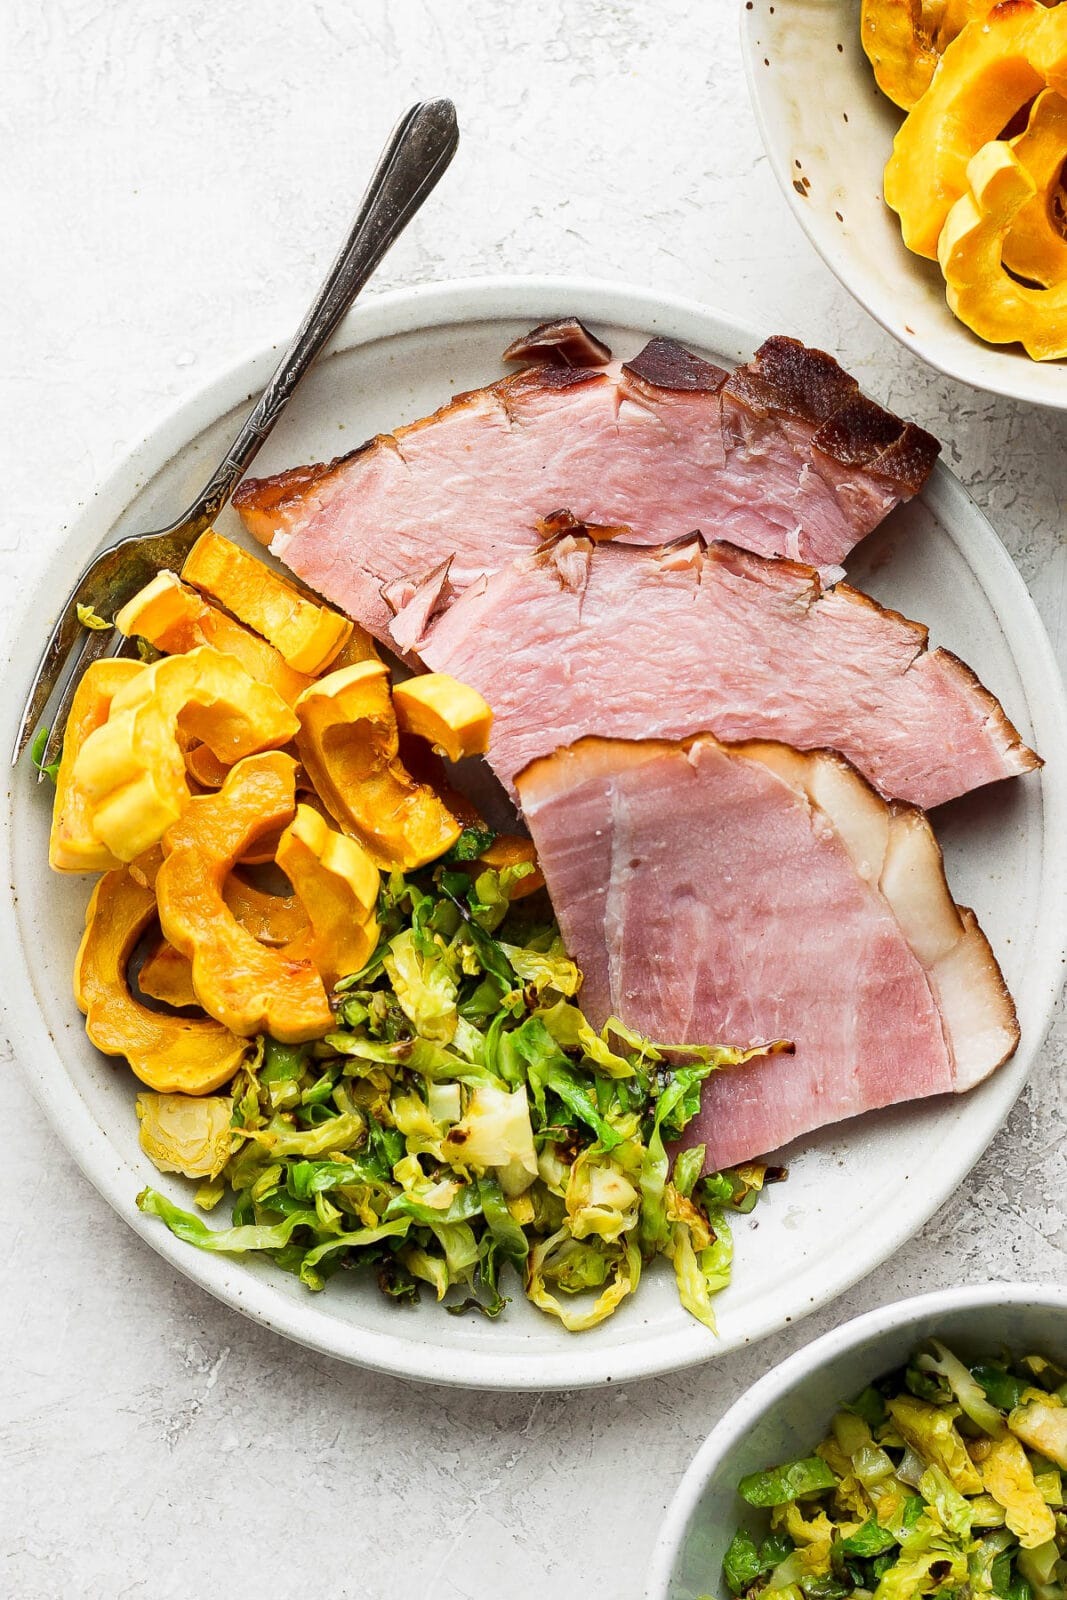 Plate with slices of baked ham, squash, and shaved brussel sprouts.